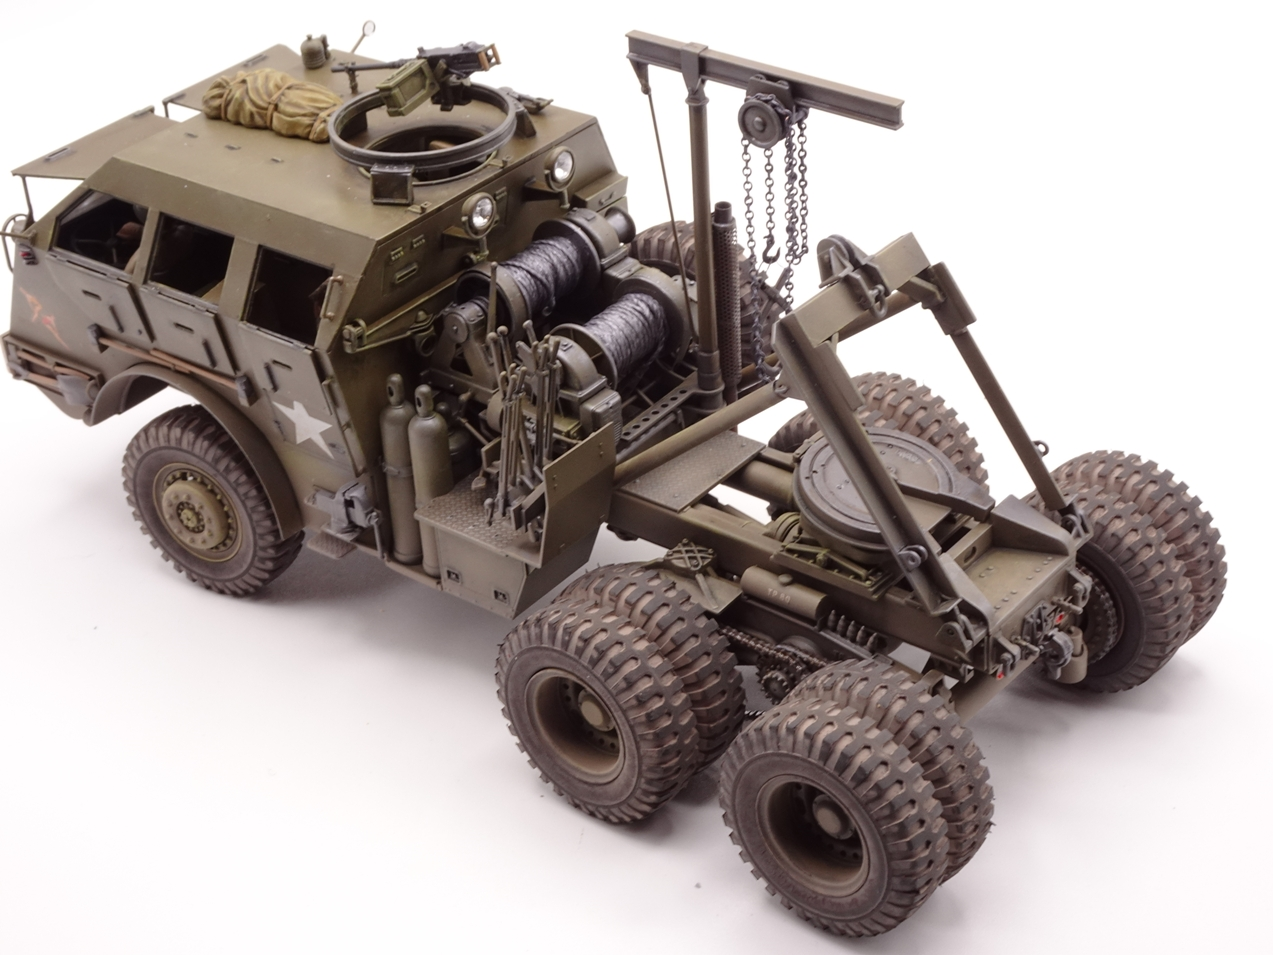 [Tamiya 1/35] M26 Armored tank recovery vehicle réf. 35244 - Page 4 M26-fin-8